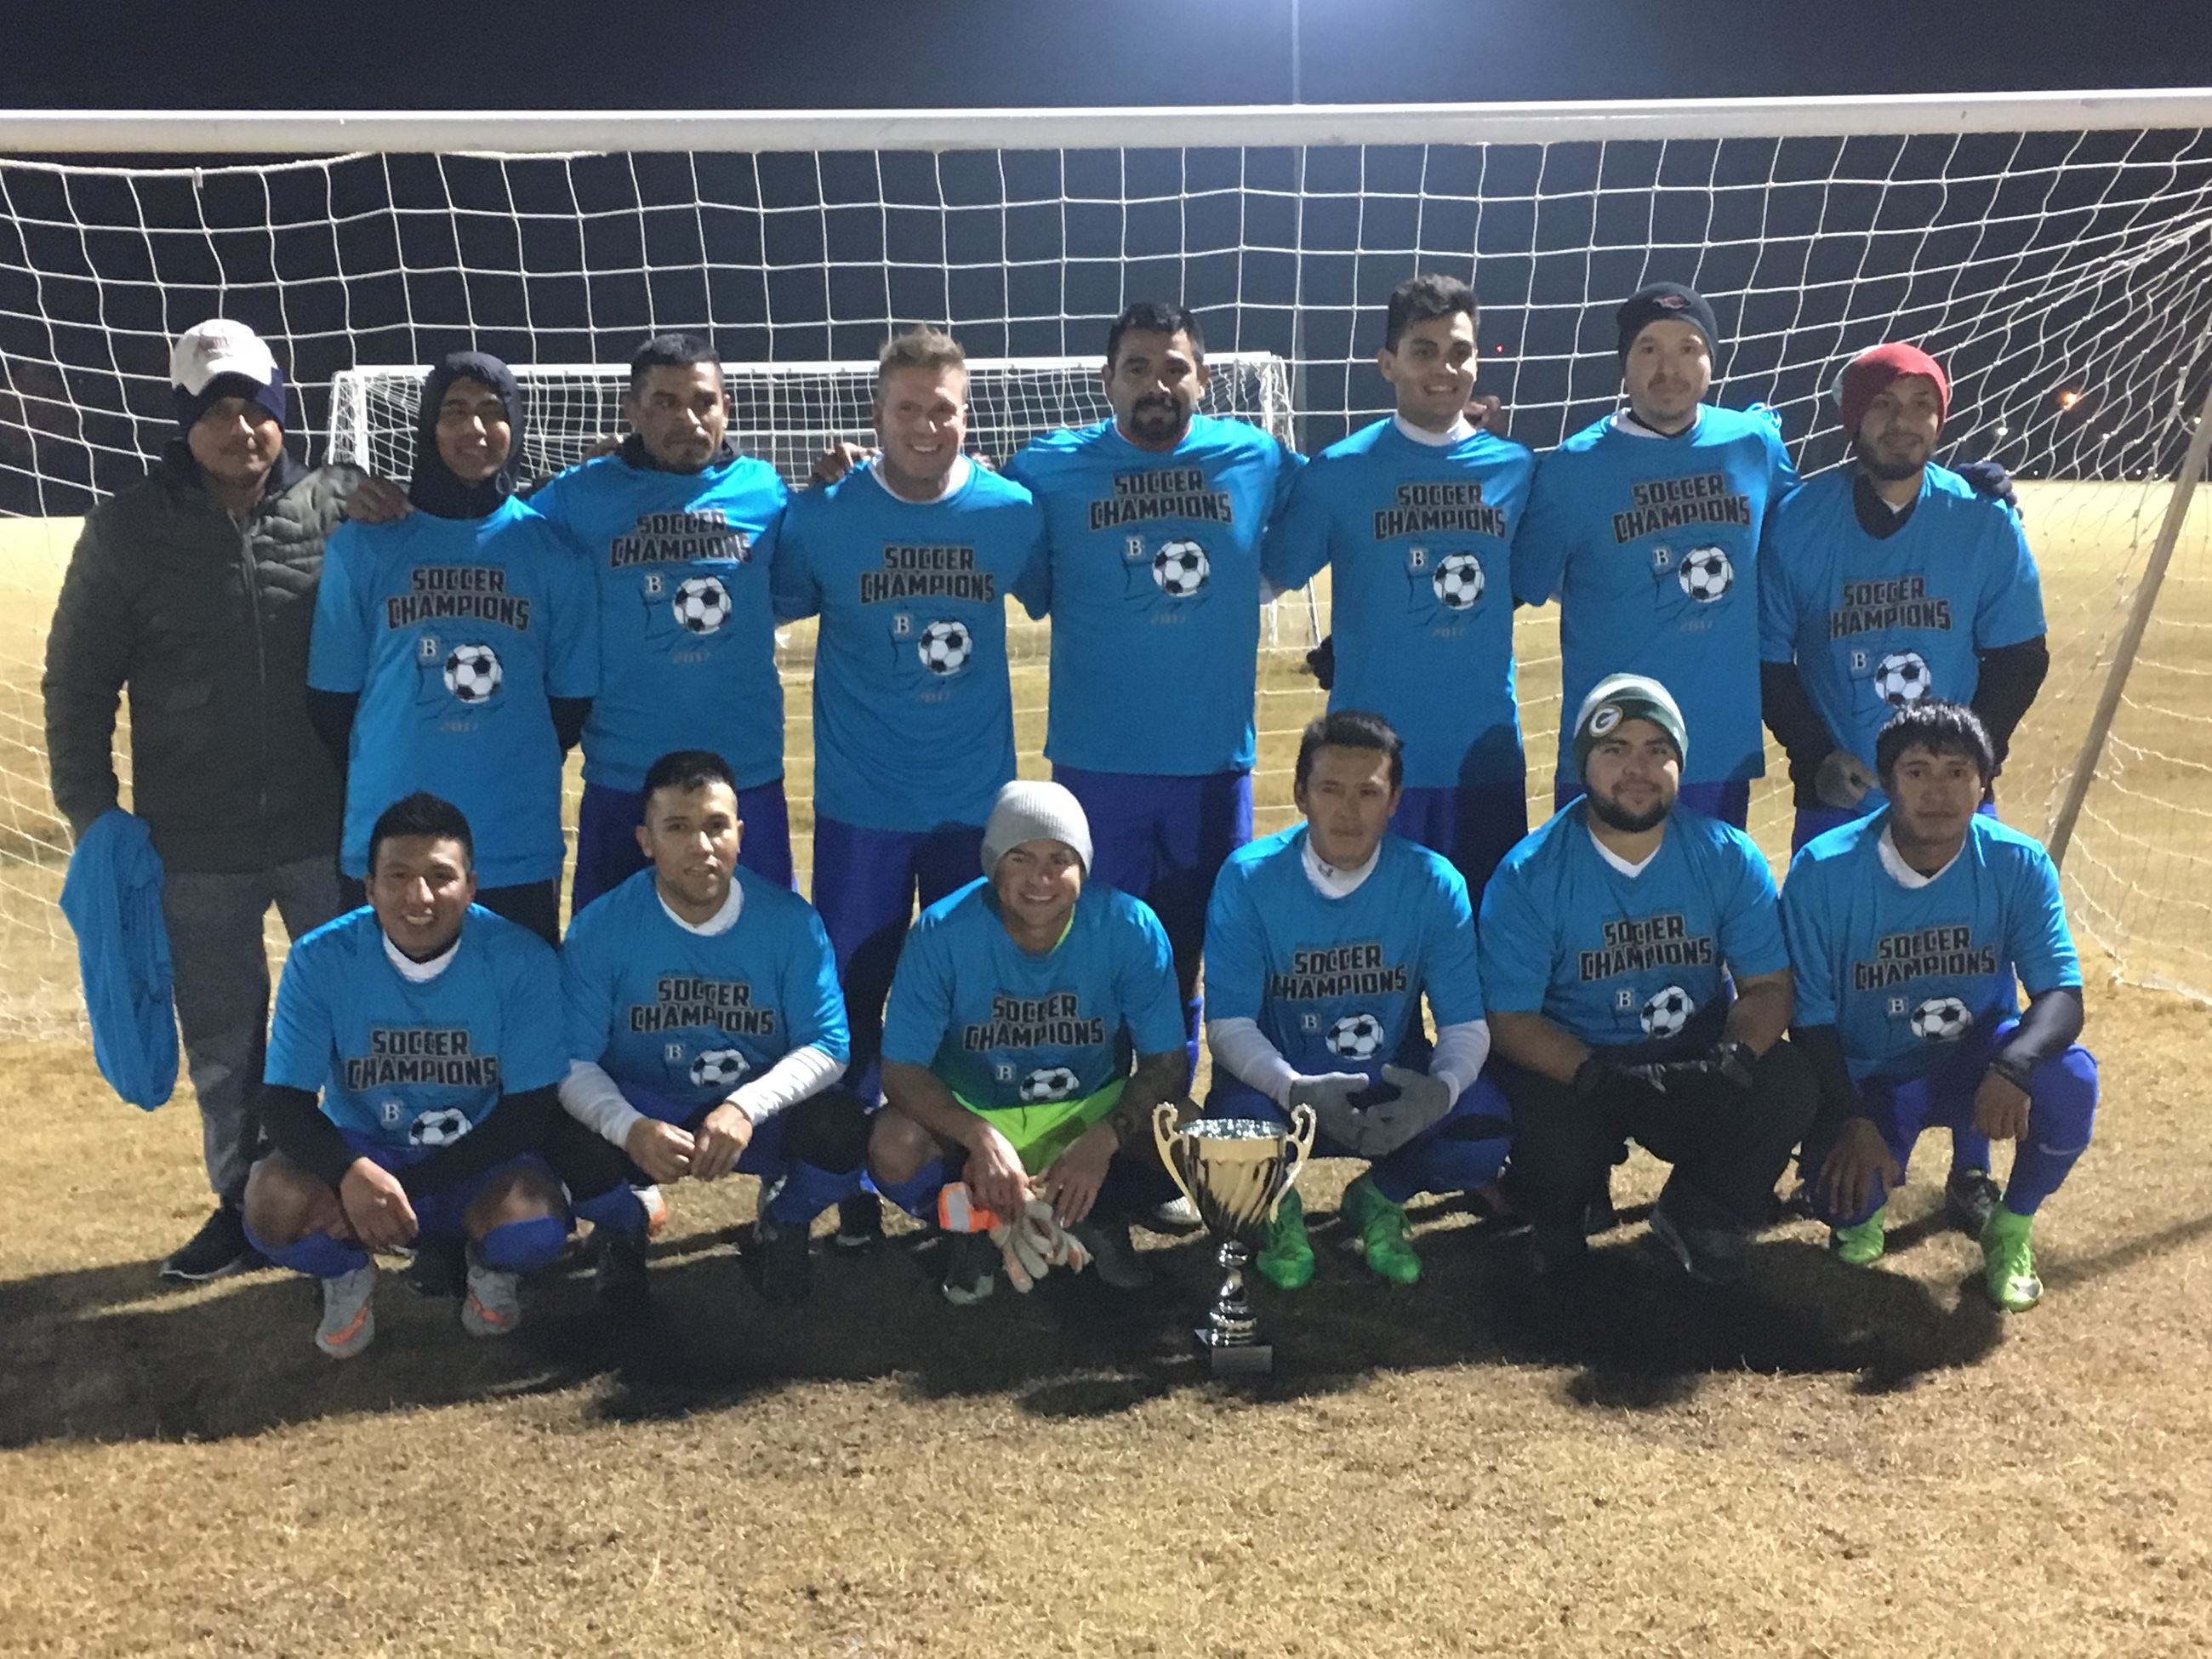 Gold Division team in blue jerseys in front of soccer goal